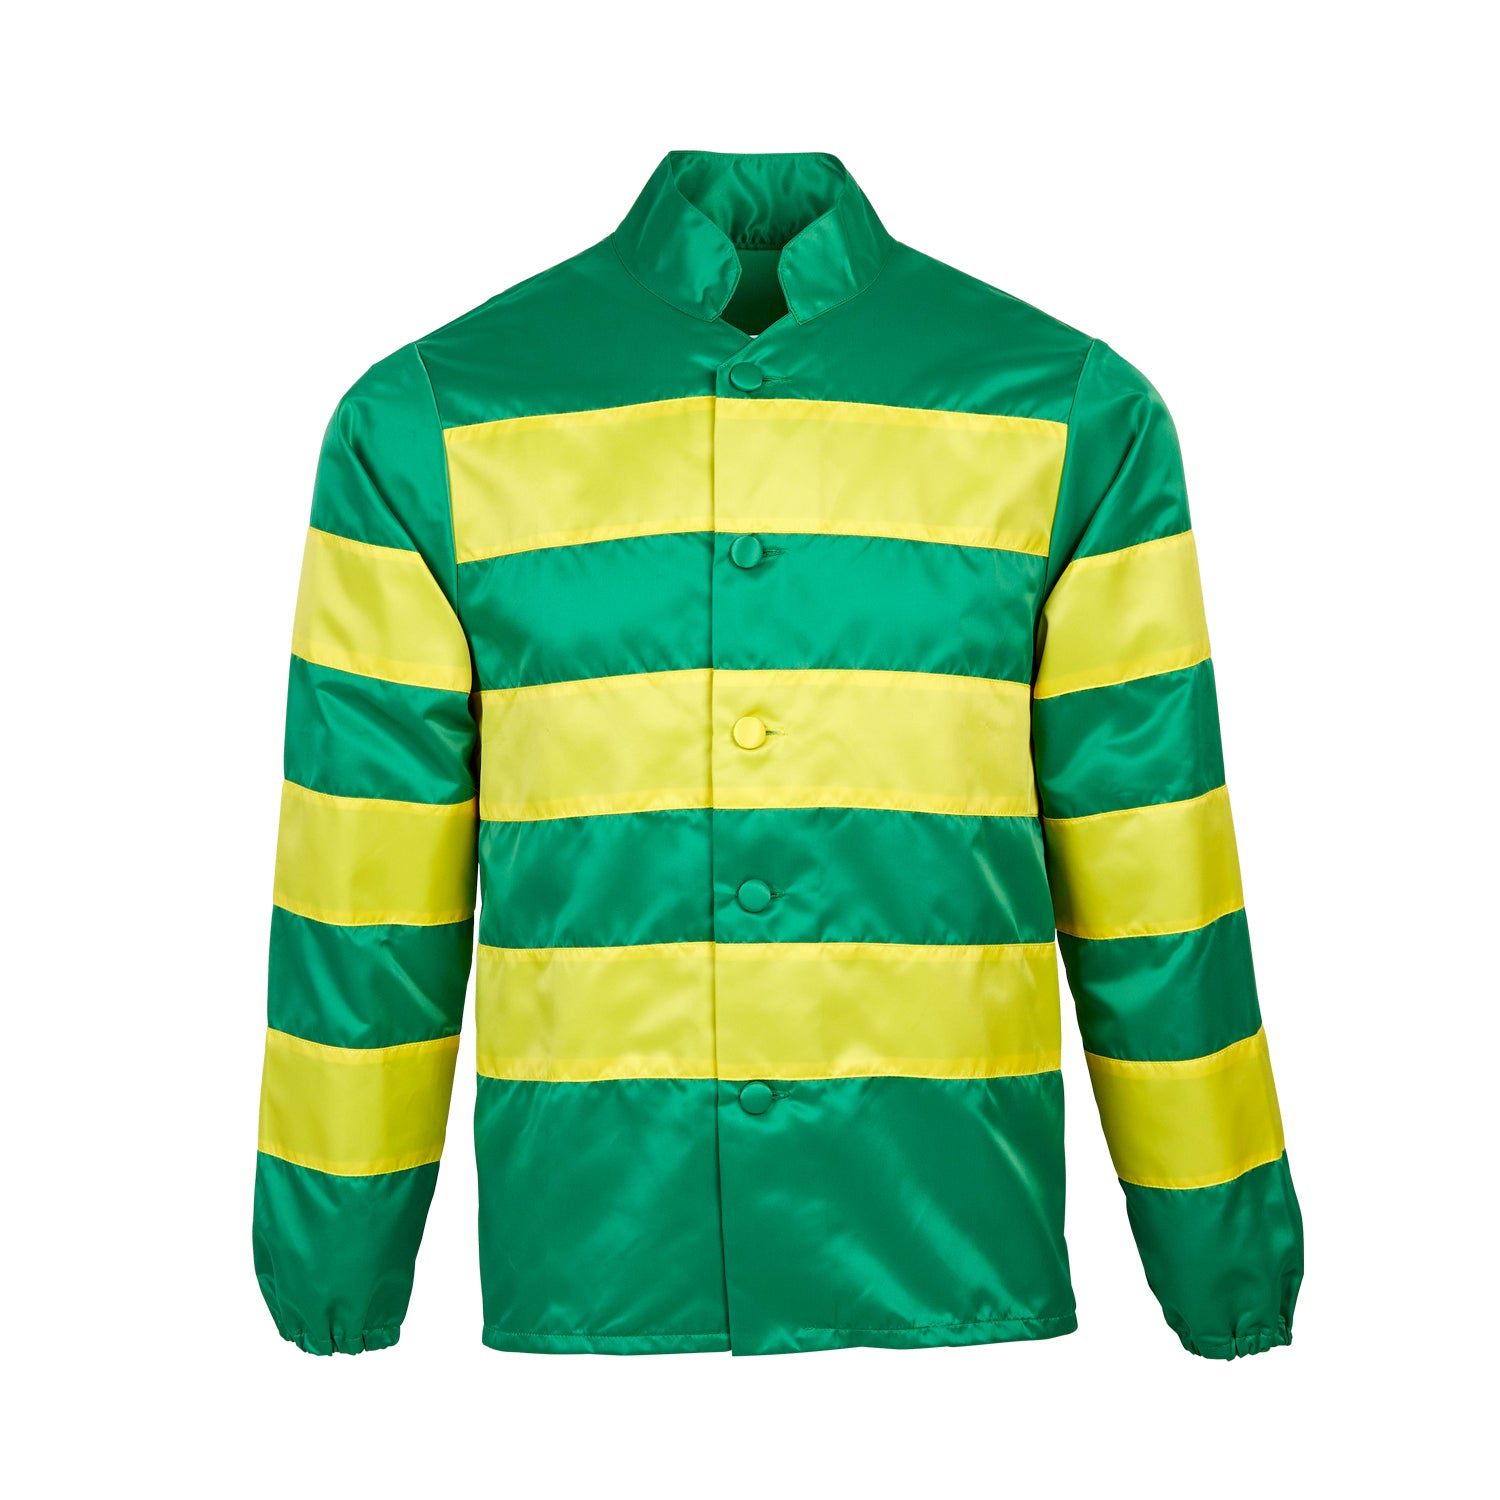 Custom Premium Satin Racing Silks - Racesafe